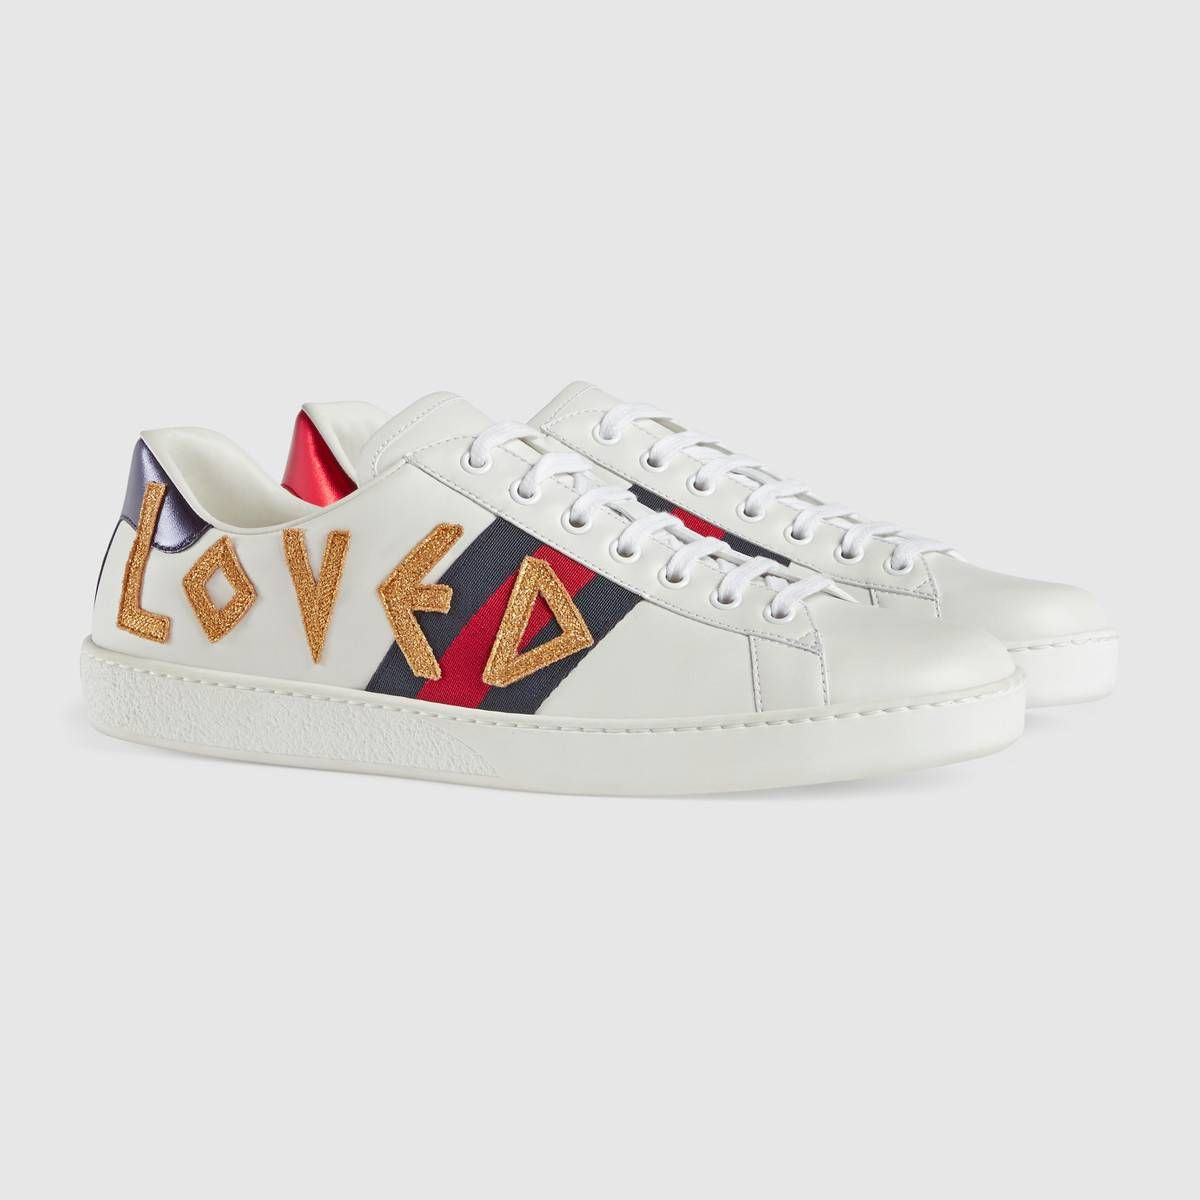 46030c94eeb Shop the Ace embroidered sneaker by Gucci. The retro inspired design of the Ace  sneaker is embellished with an embroidered Loved appliqué along the  sides—an ...